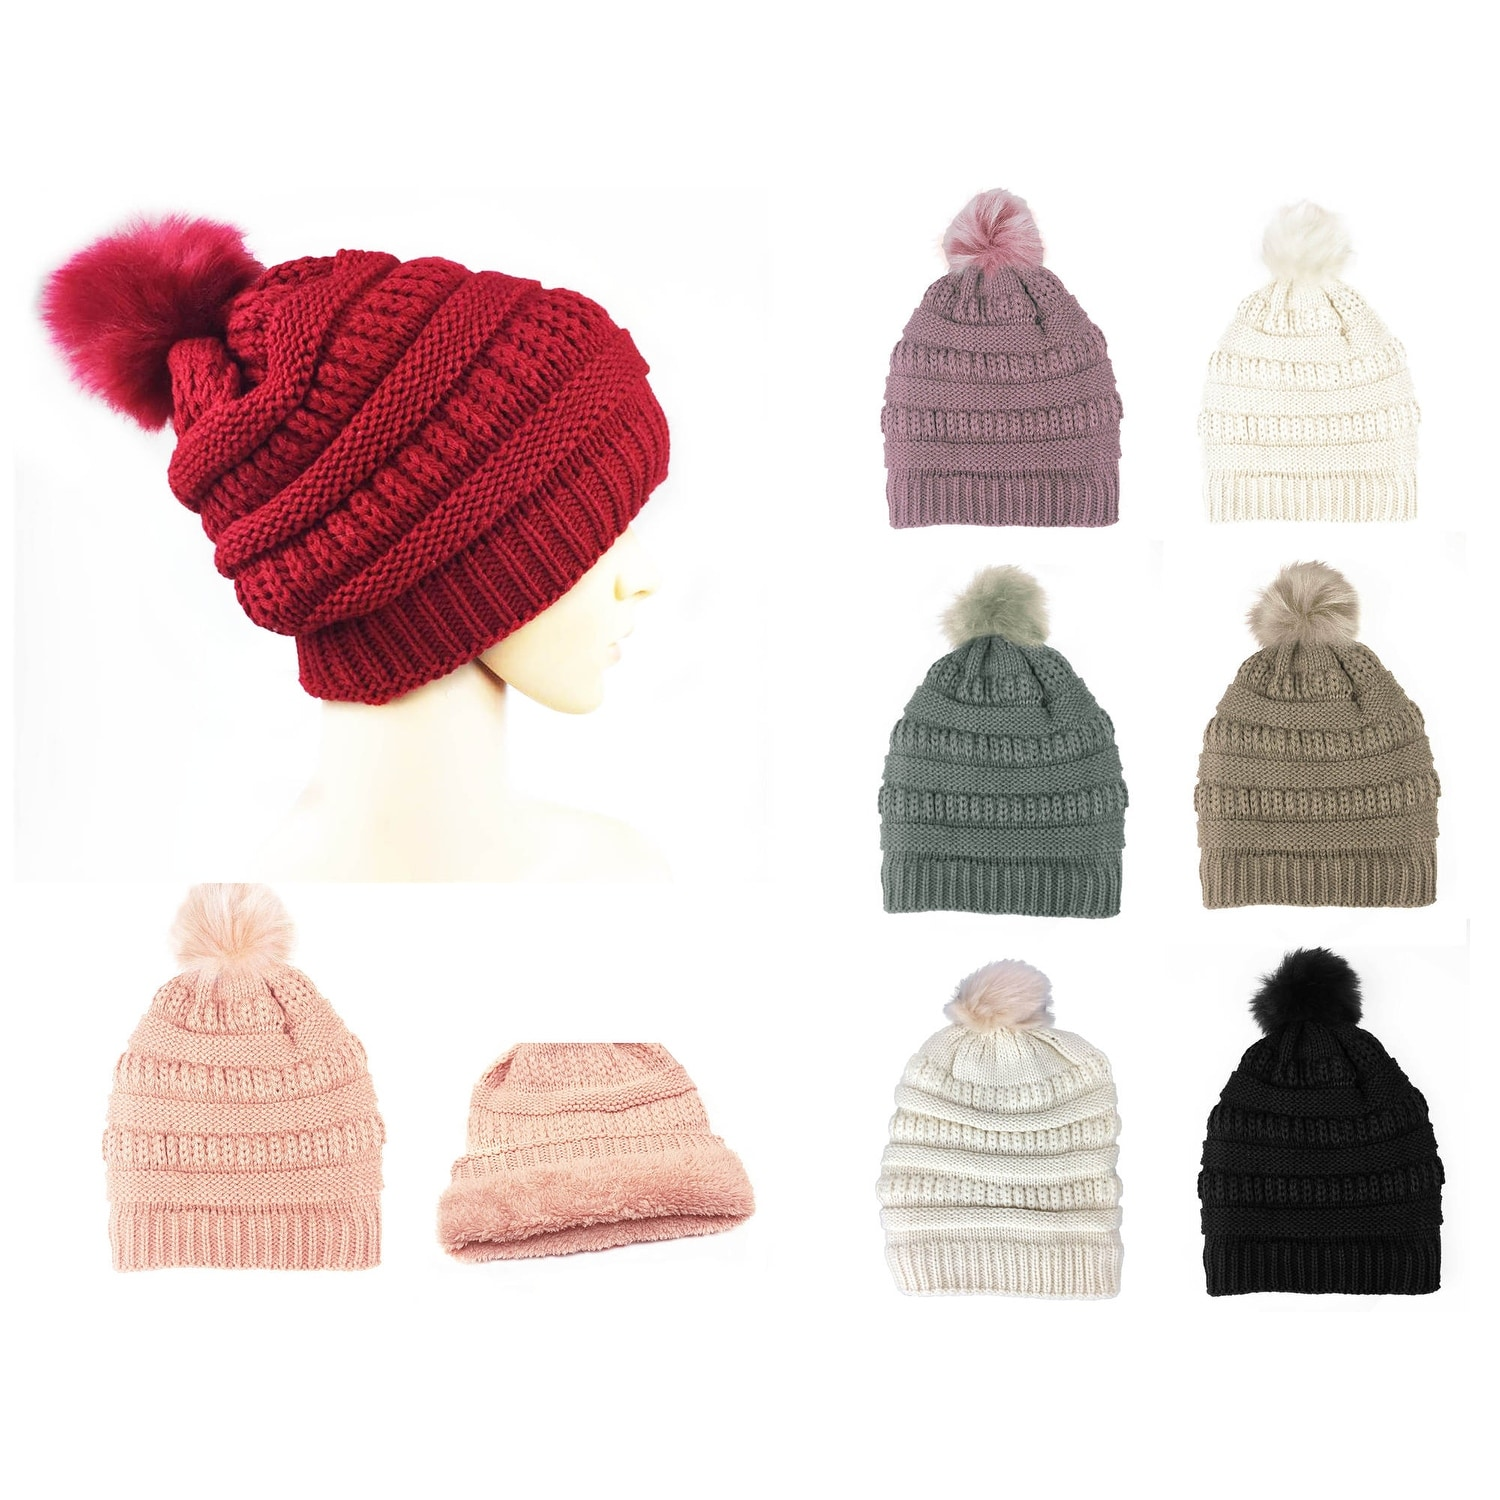 d7a4c90a3 Chunky Cable Knit Beanie Hat With Pom Pom Winter Soft Stretch Cap Hat